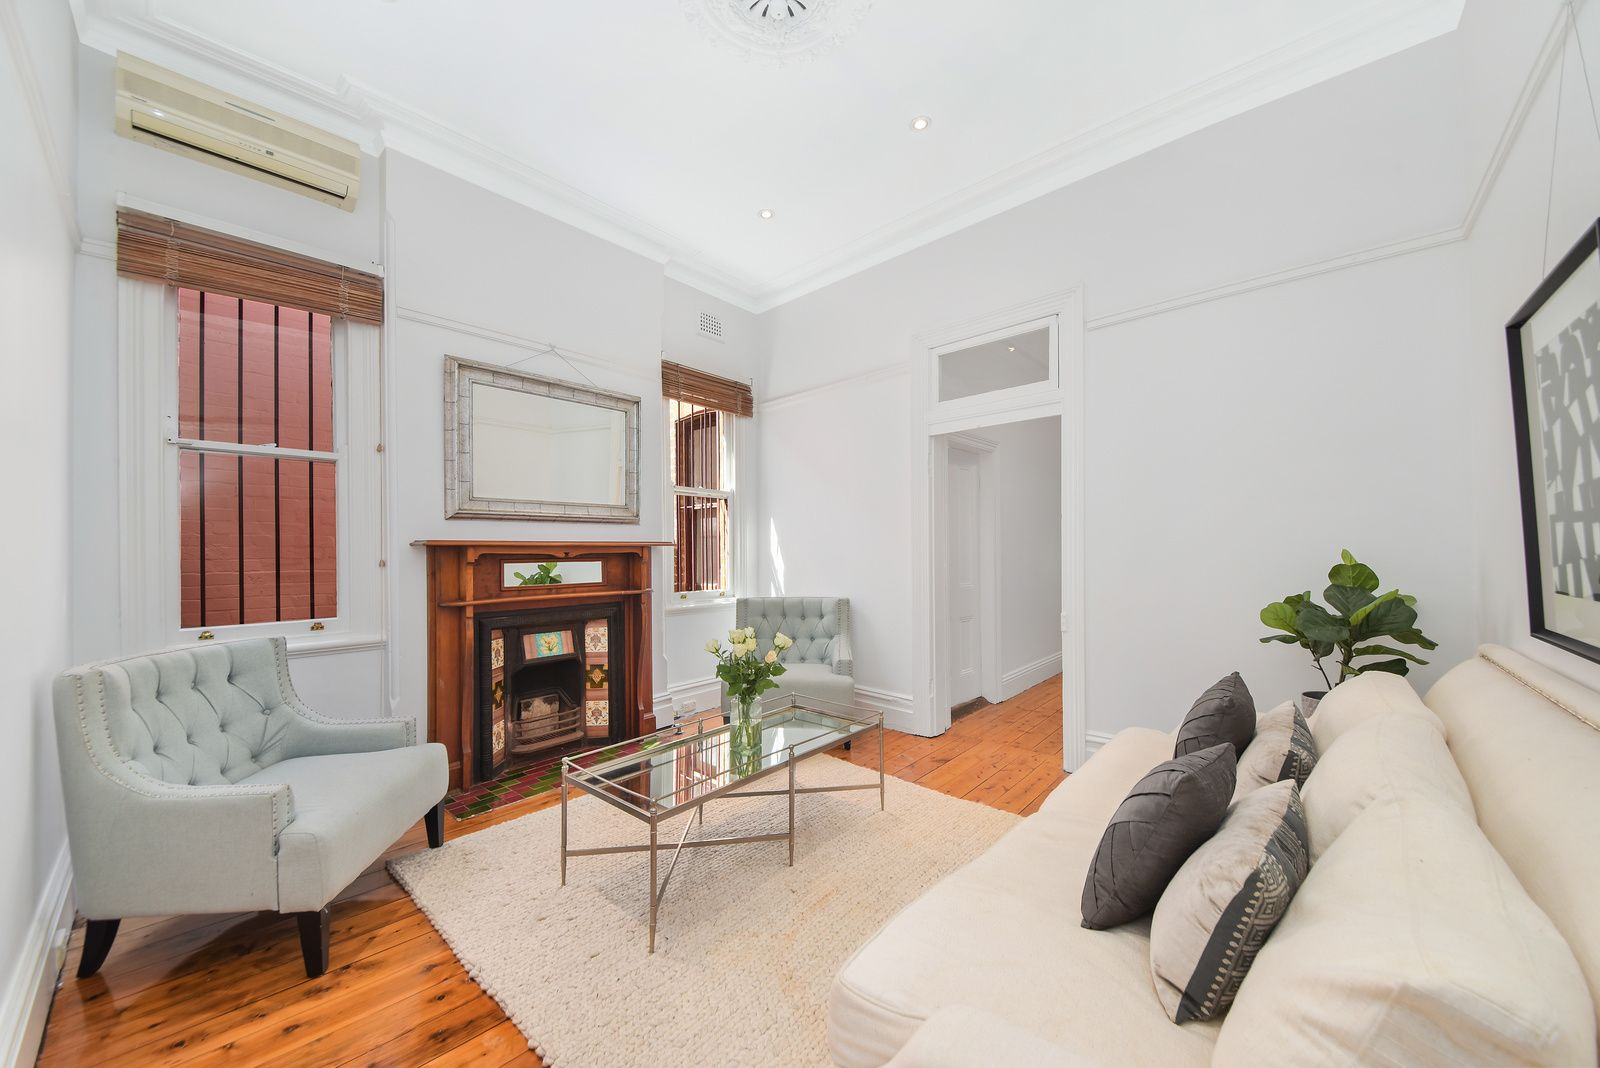 87 and 87a Percival Rd, Stanmore NSW 2048, Image 0